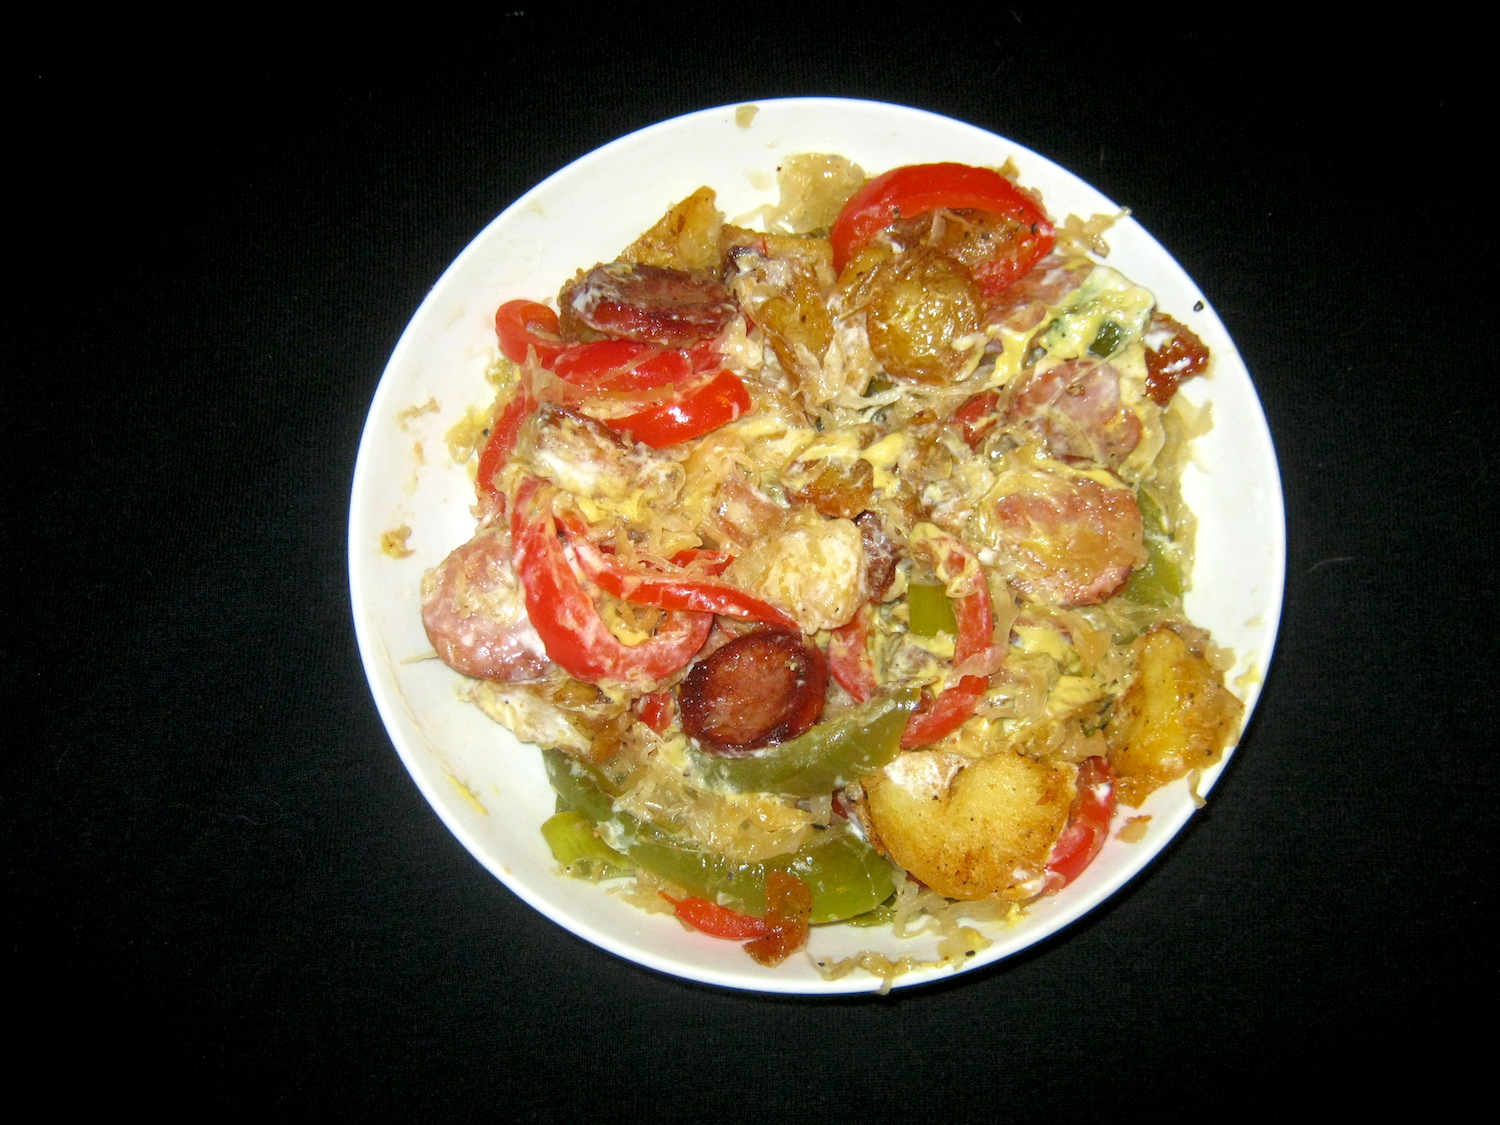 Sauerkraut and Smoked Sausage in a white bowl